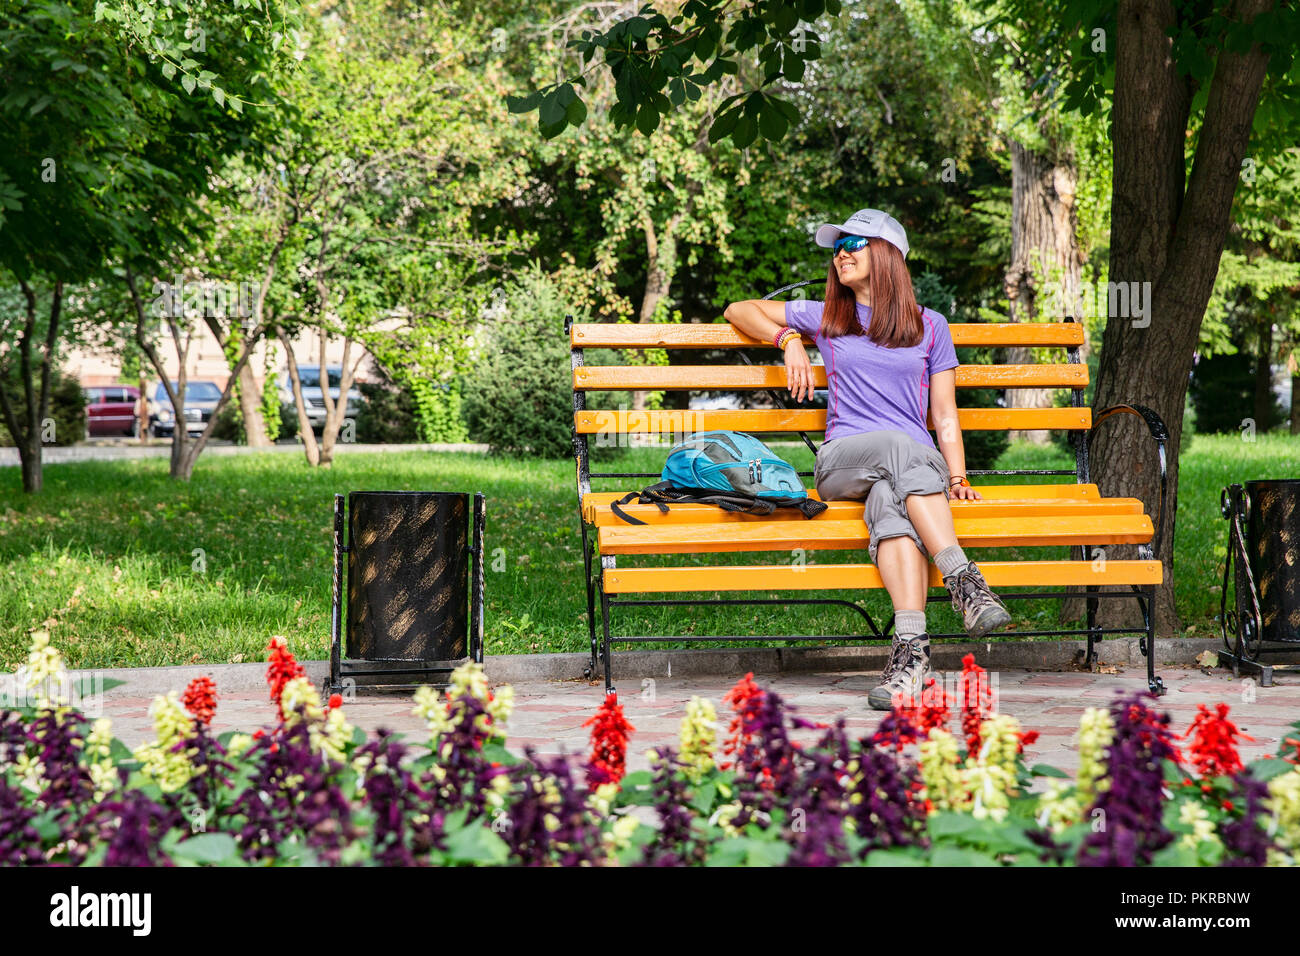 Images of Таттыбюбю ТурсунбаевойPanfilov Square in Bishkek, the wonderful, walkable capital of Kyrgyzstan. Stock Photo